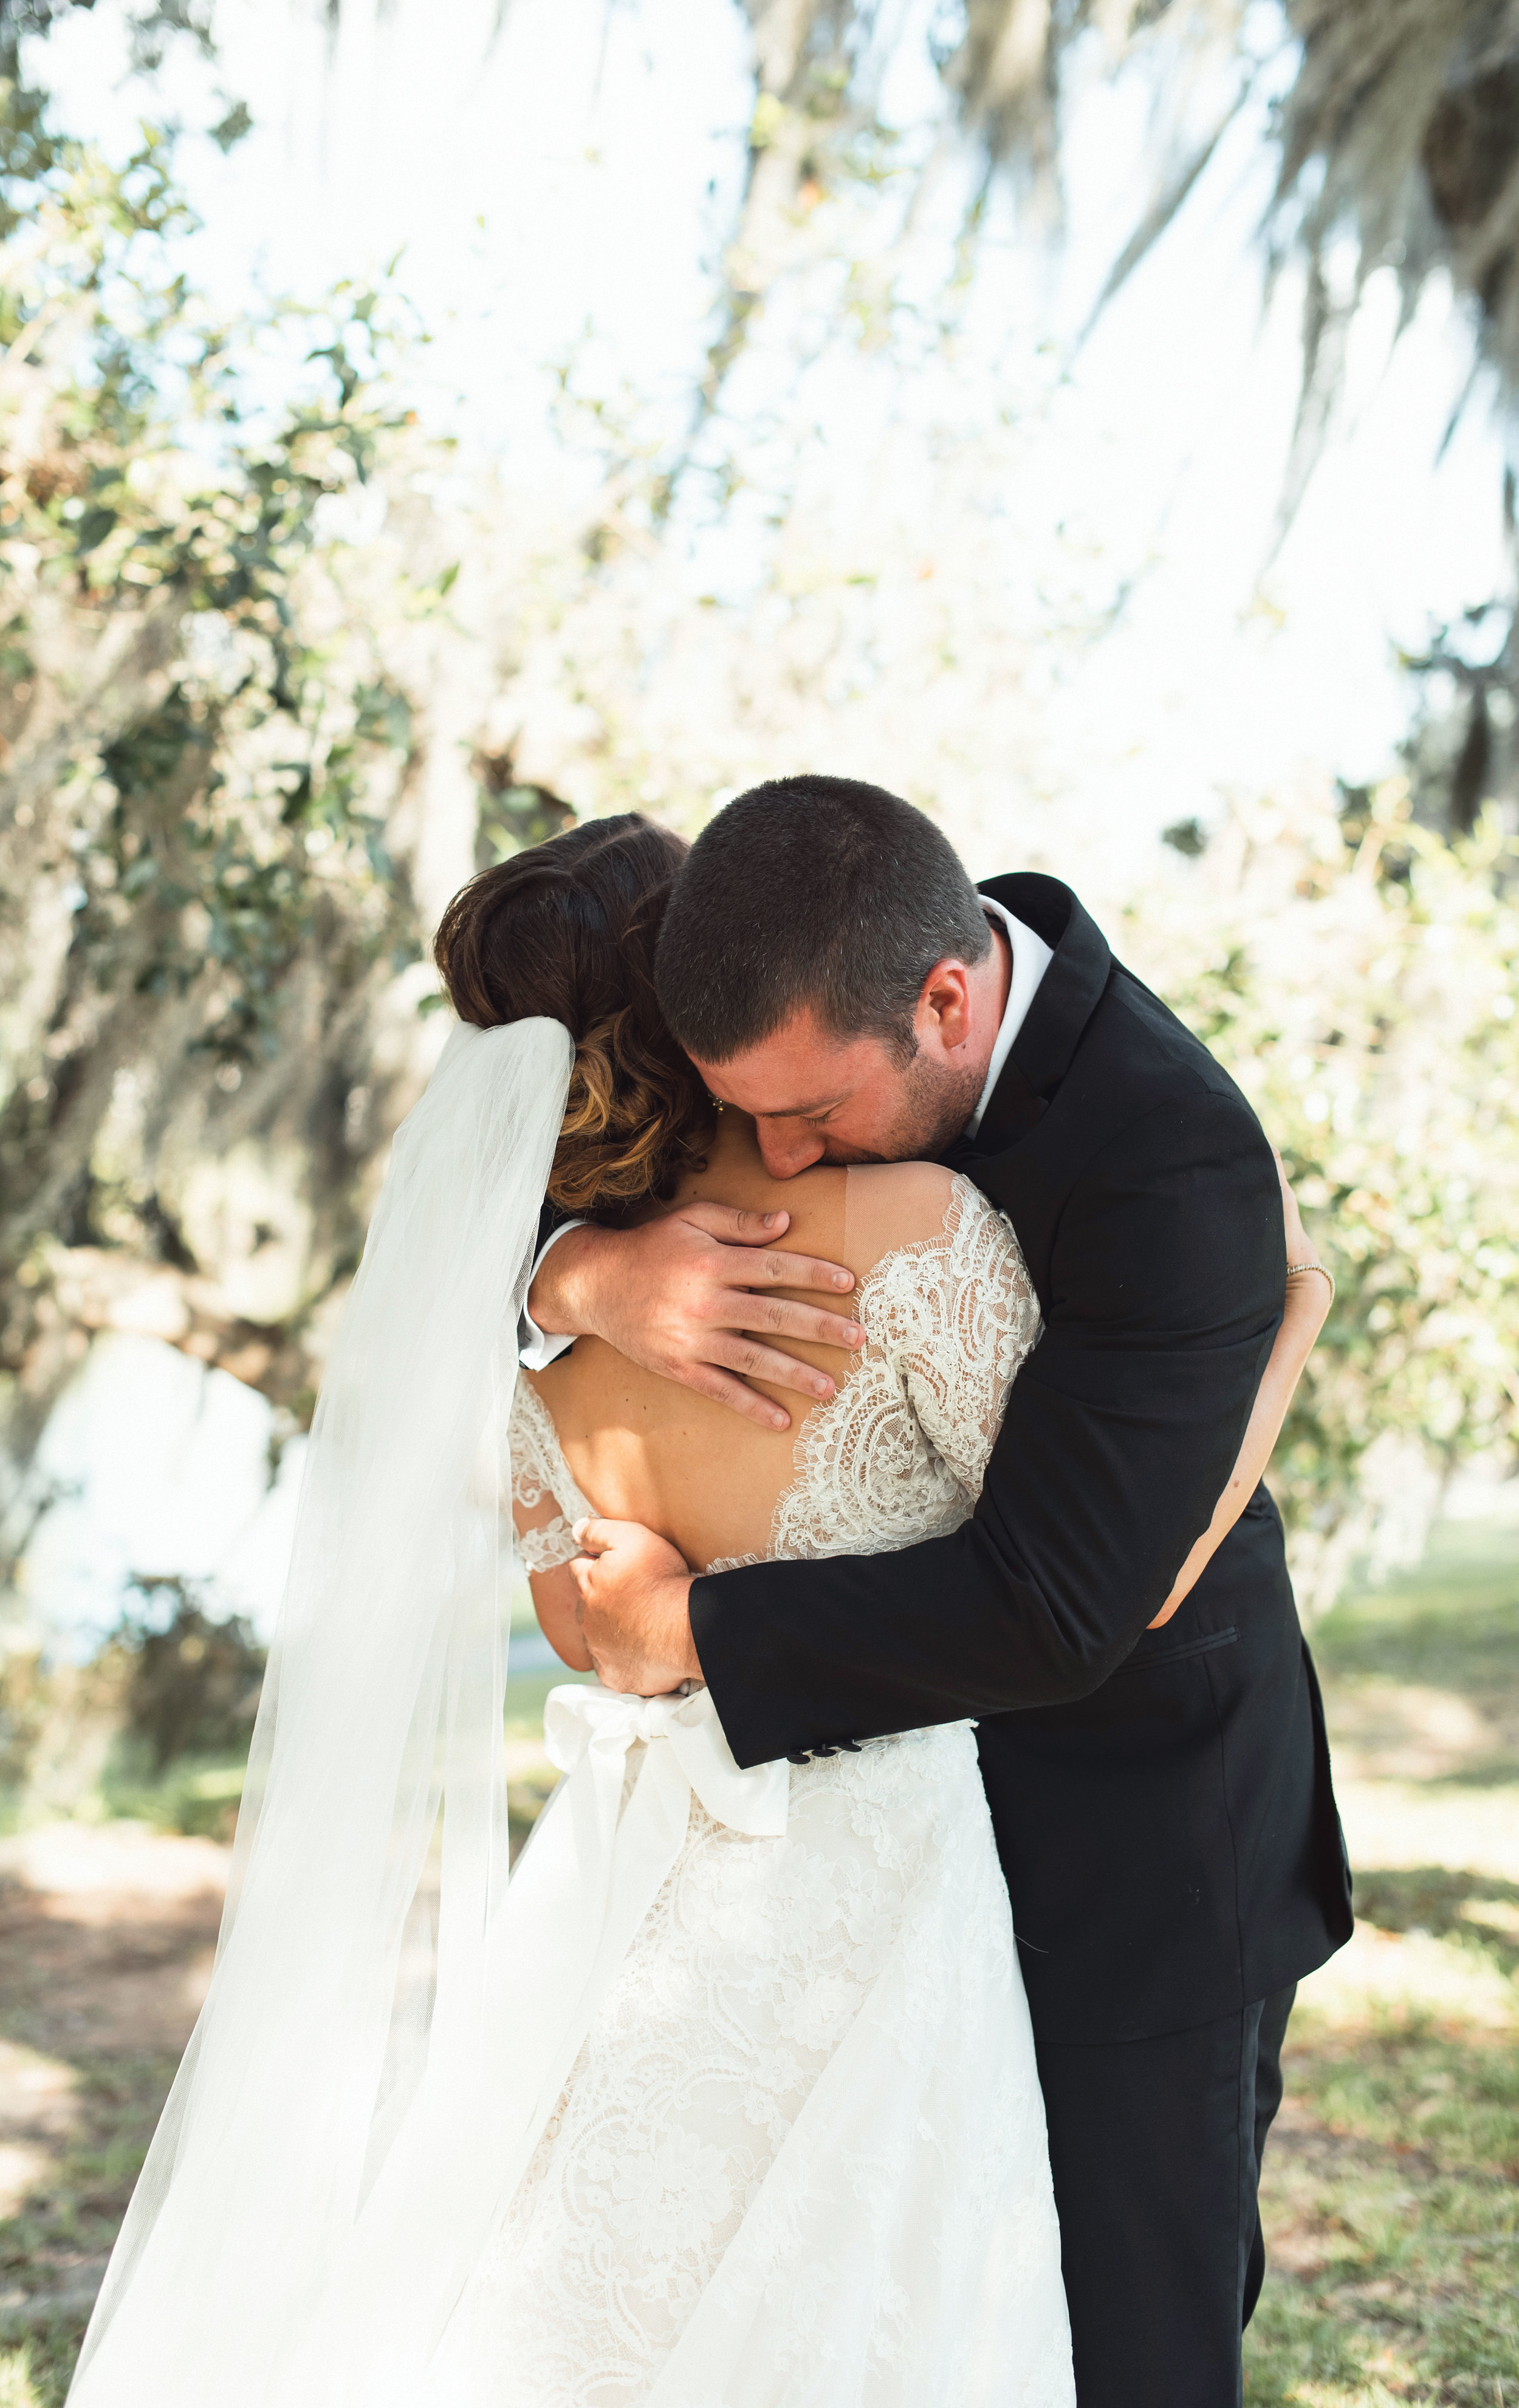 Southern Fete, Southern Wedding, Bride and Groom first look, Kimbrali Photography